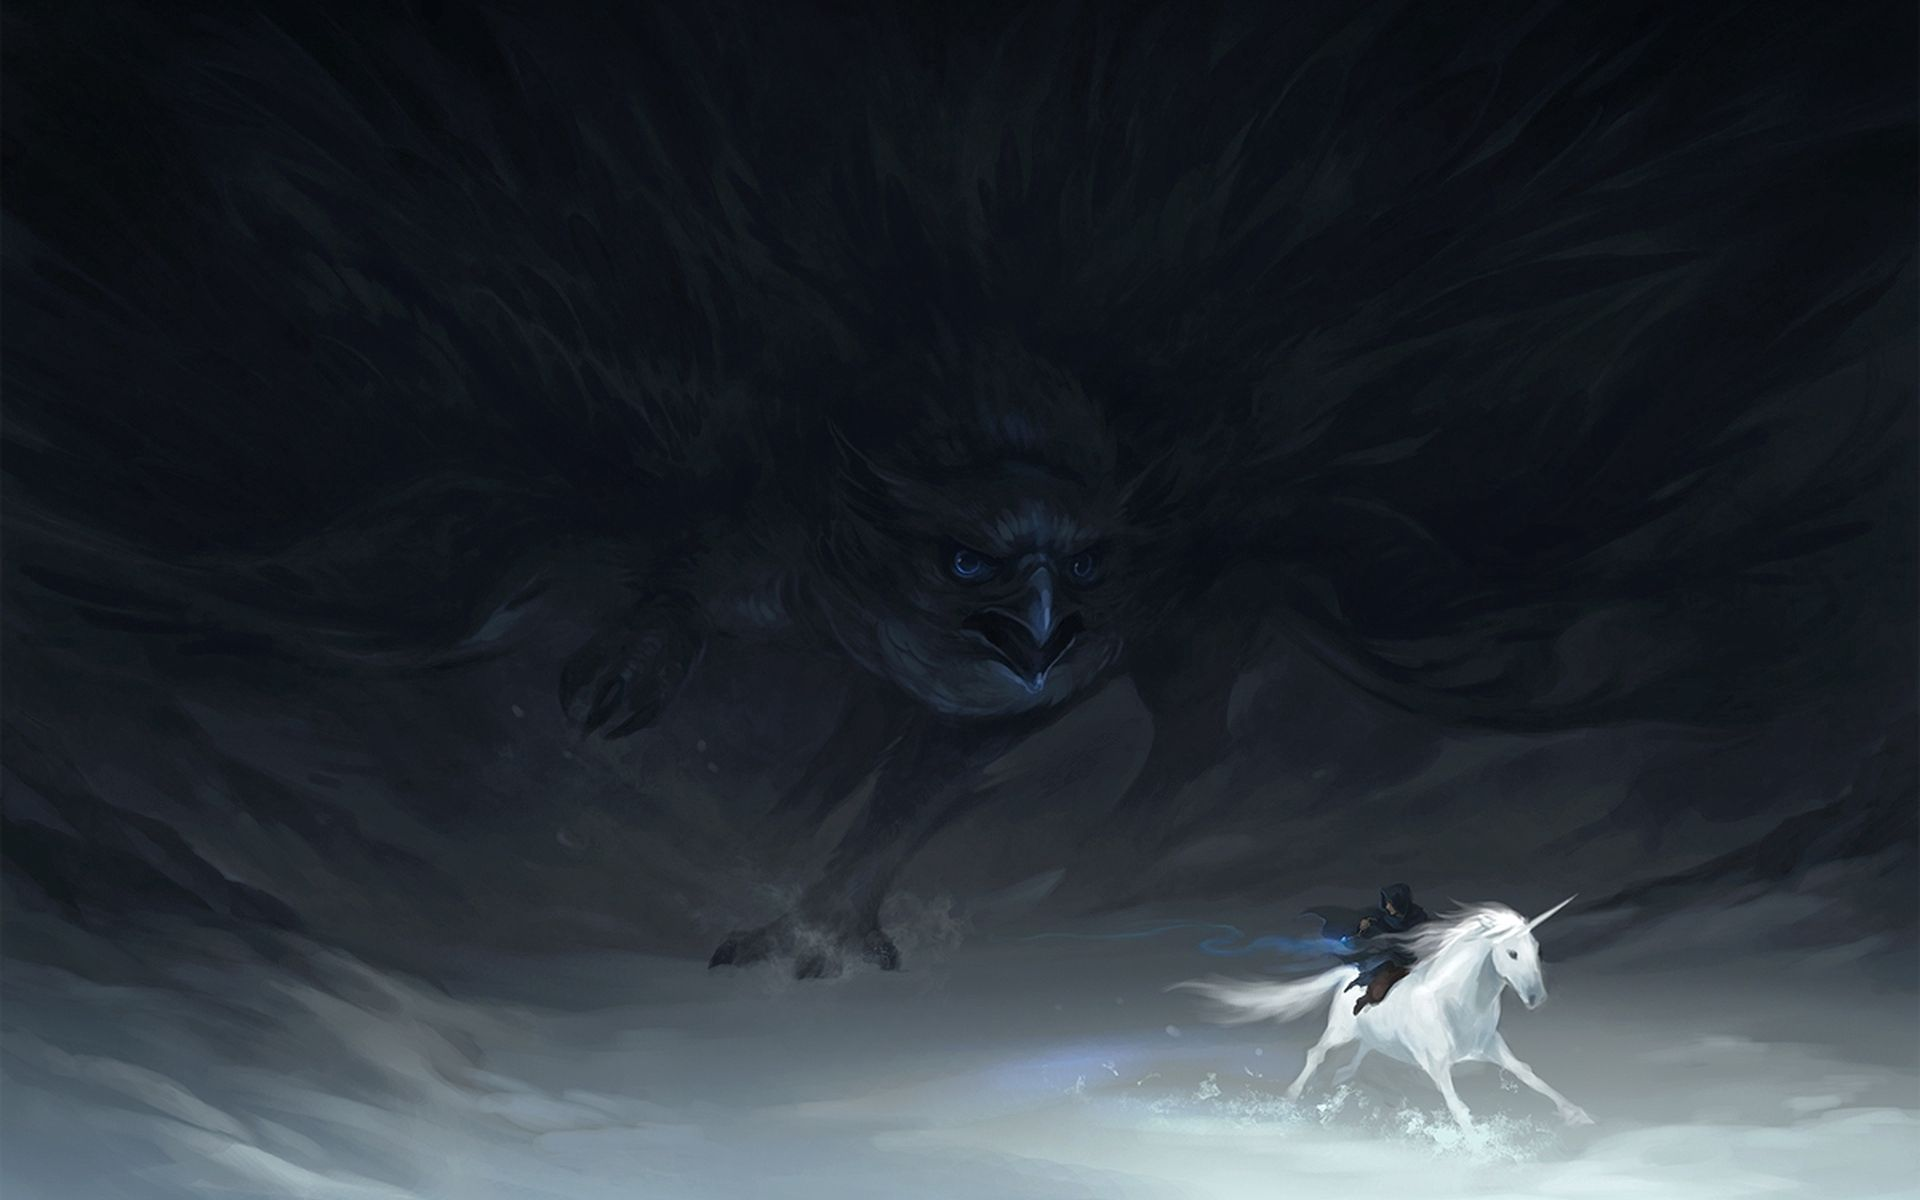 88325 download wallpaper Fantasy, Chase, Unicorn, Hunting, Hunt, Hawk, Creatures screensavers and pictures for free